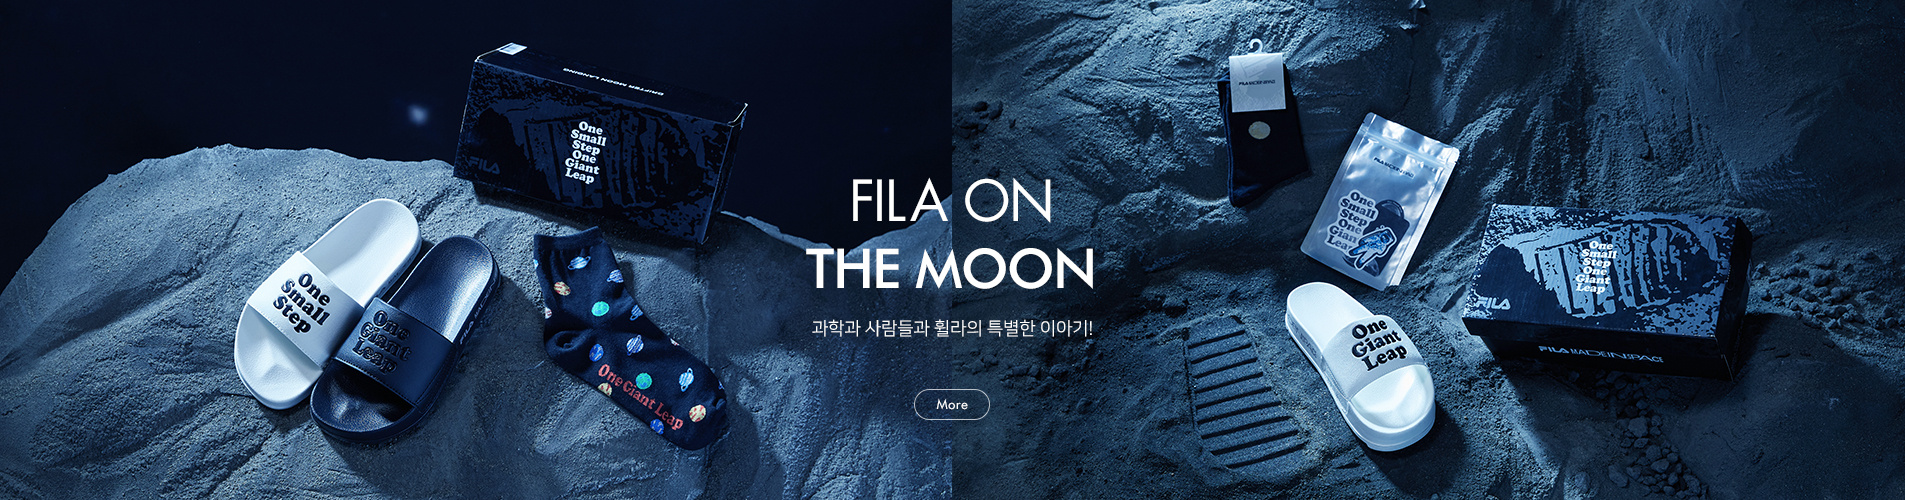 FILA ON THE MOON mobile